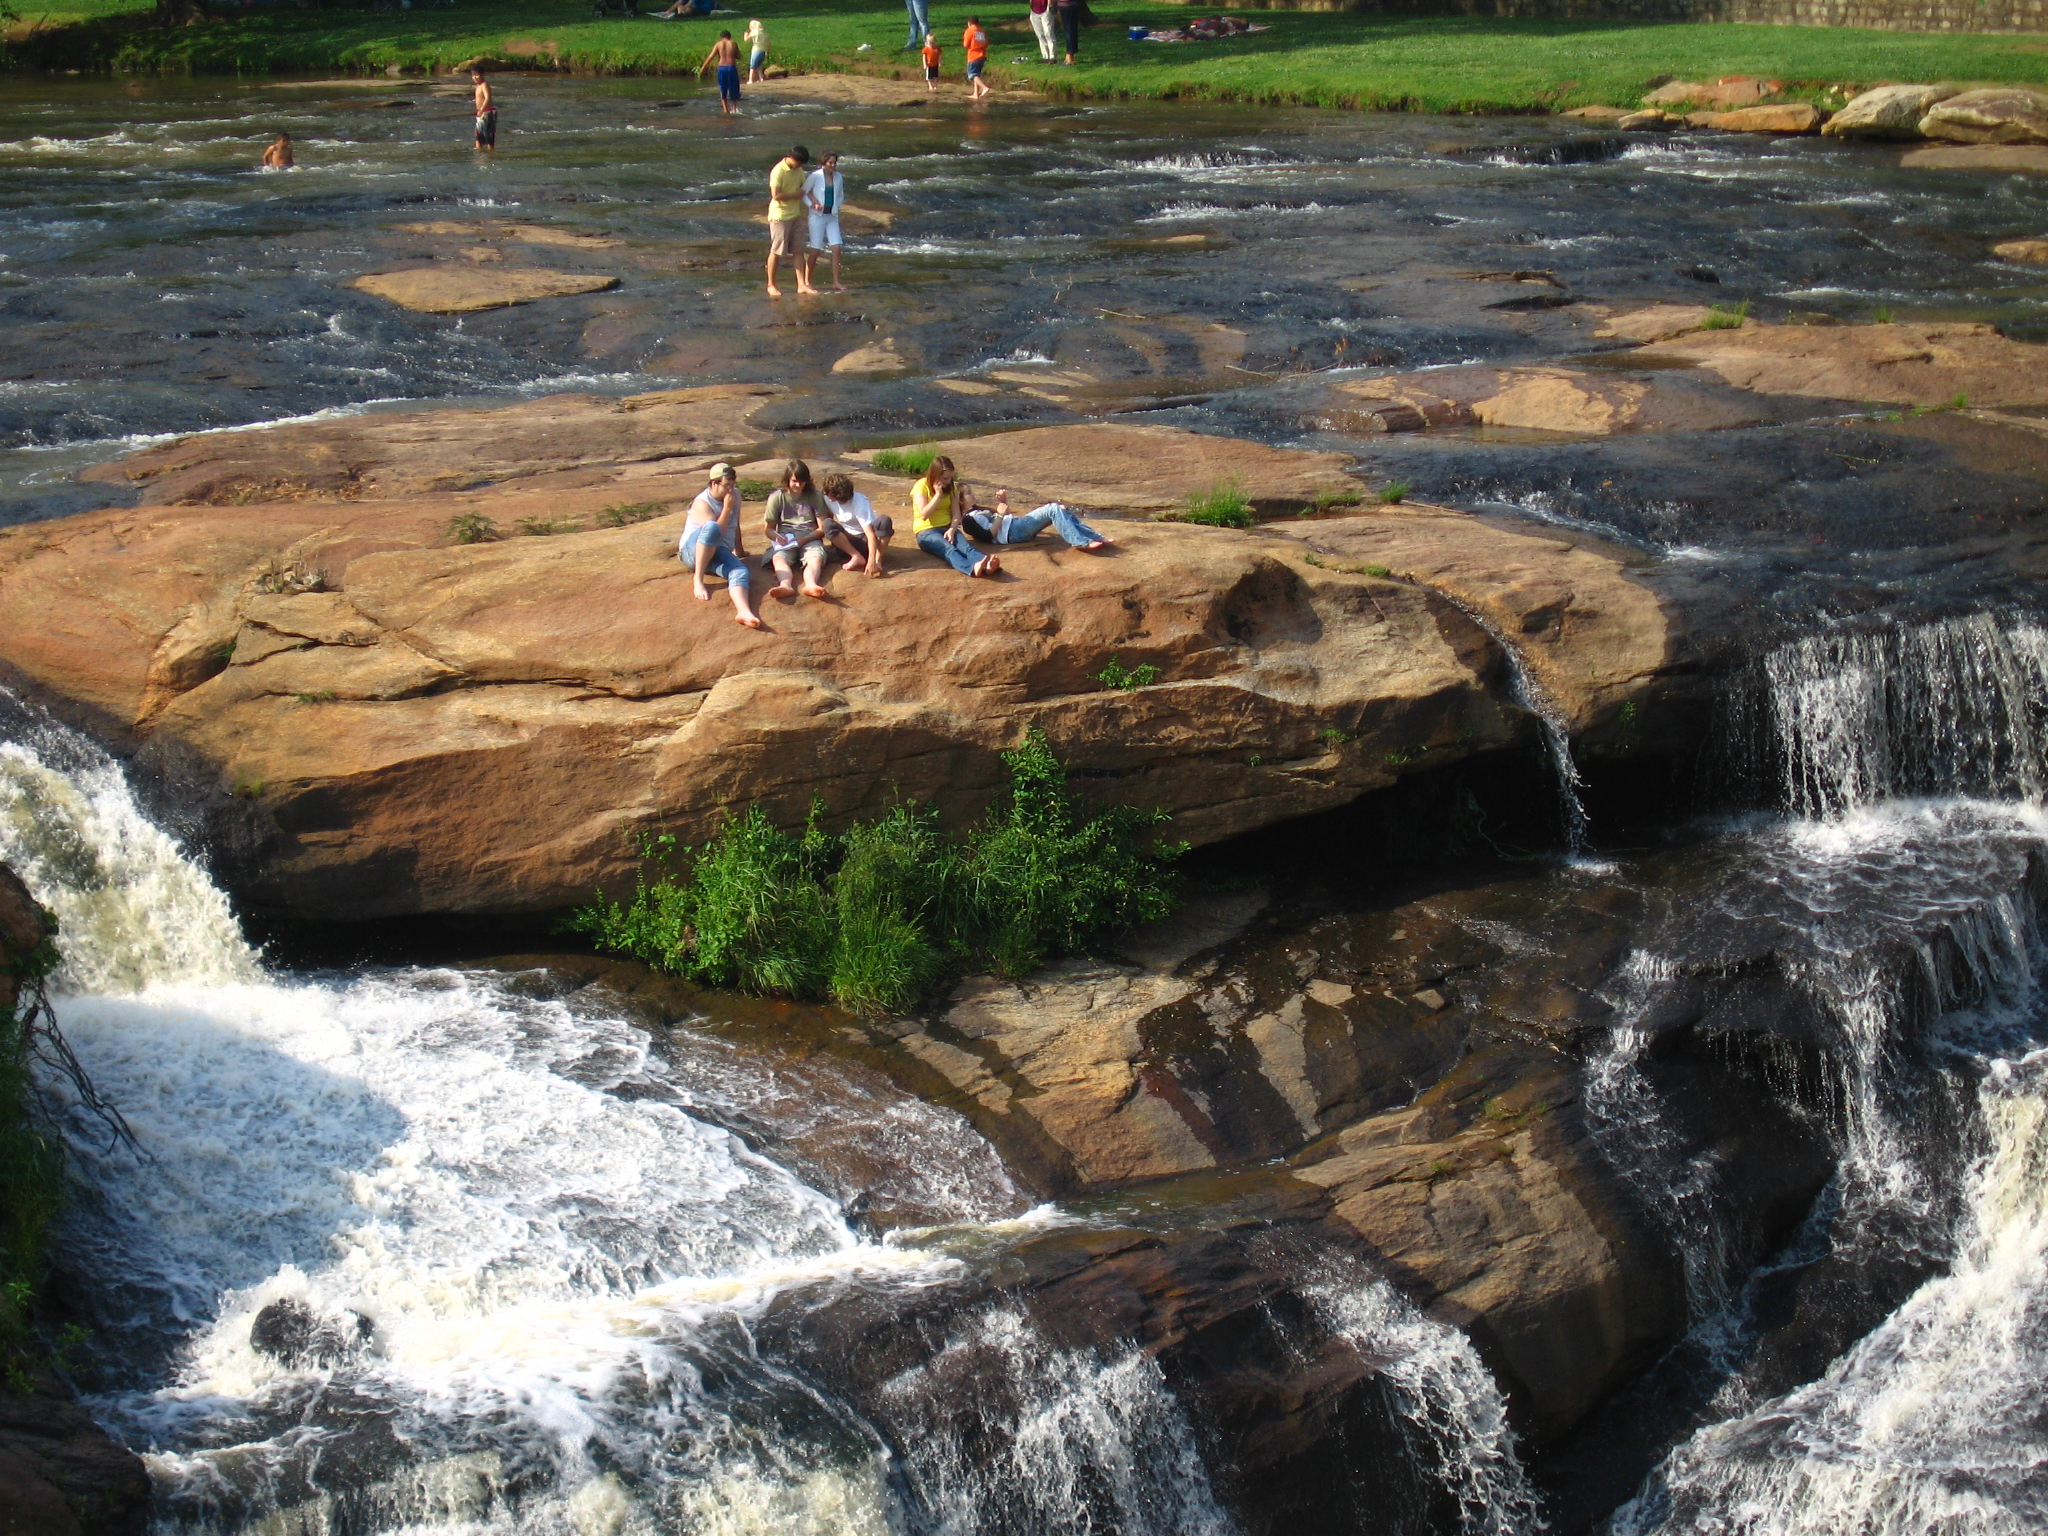 Falls Park, Greenville, South Carolina